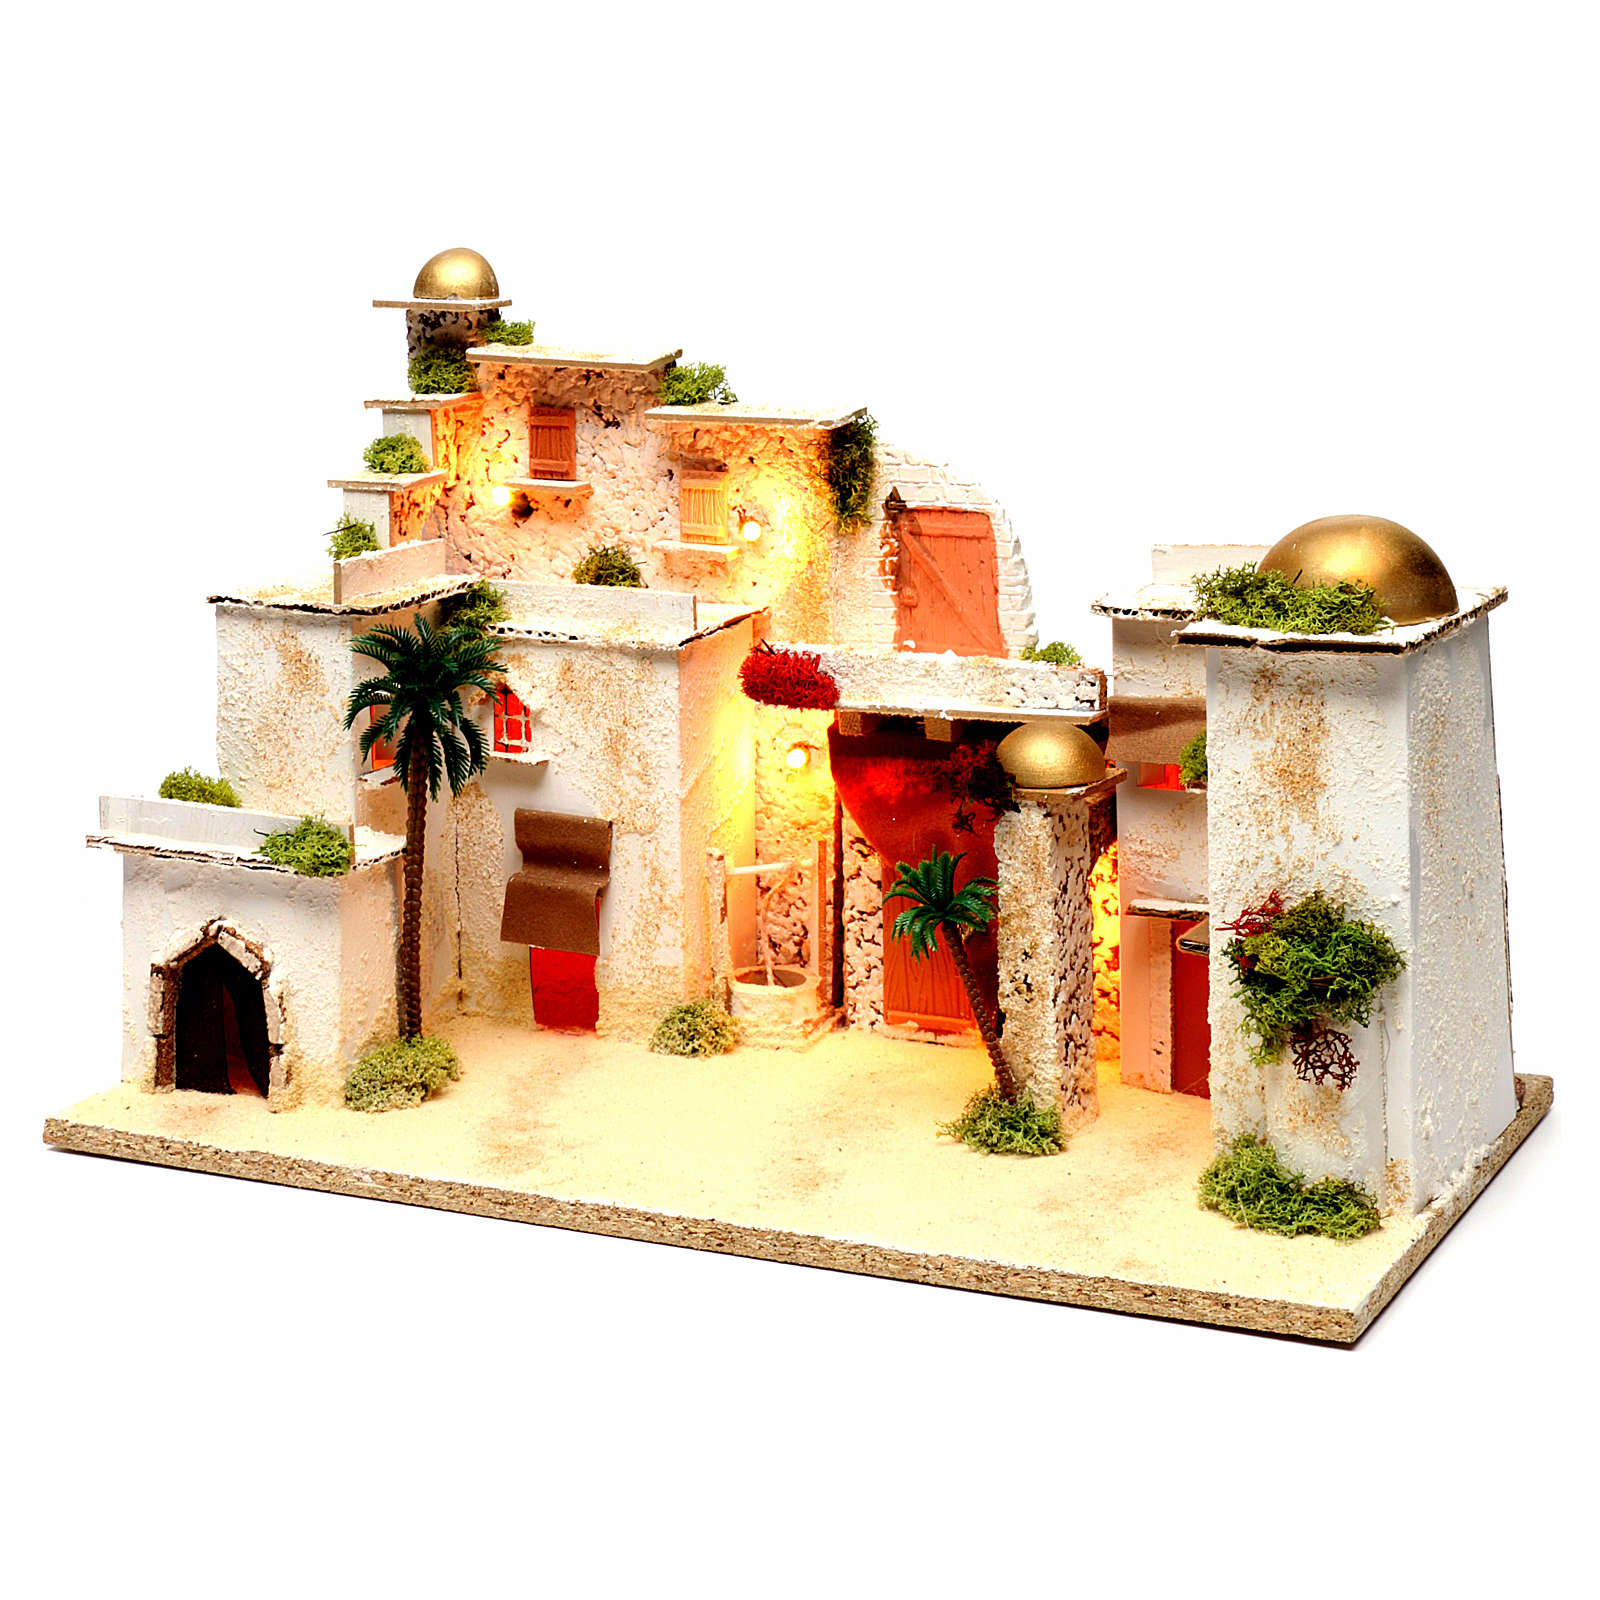 Arab Panorama with Lights for Nativity 35X50X30 cm 4